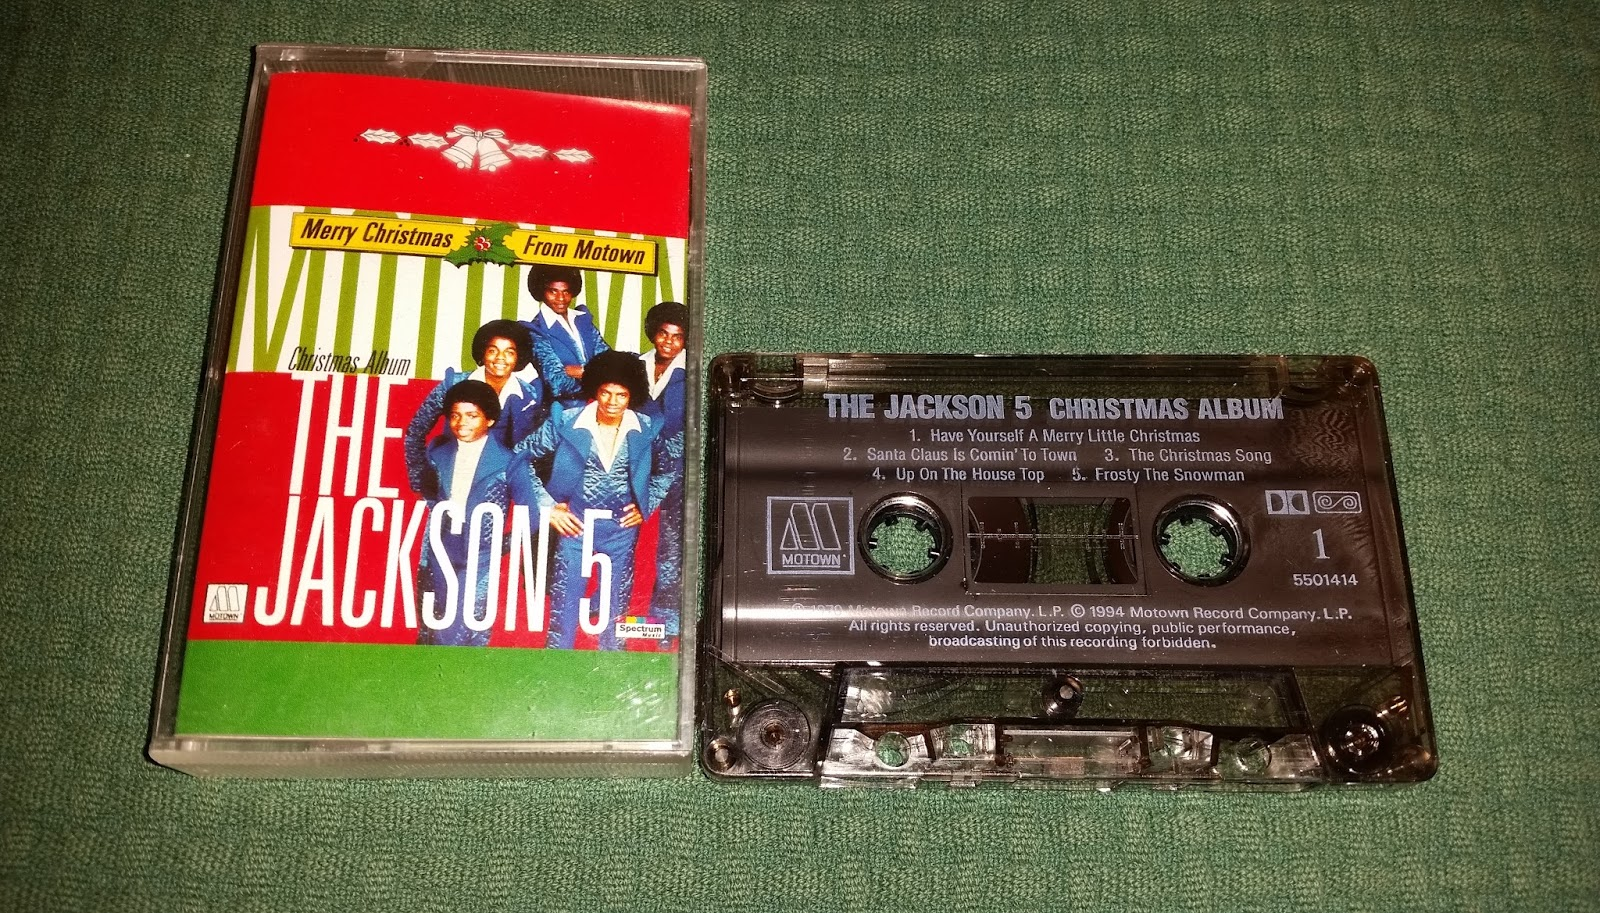 merry christmas from motown holland motown 550141 4 - The Jackson 5 Have Yourself A Merry Little Christmas